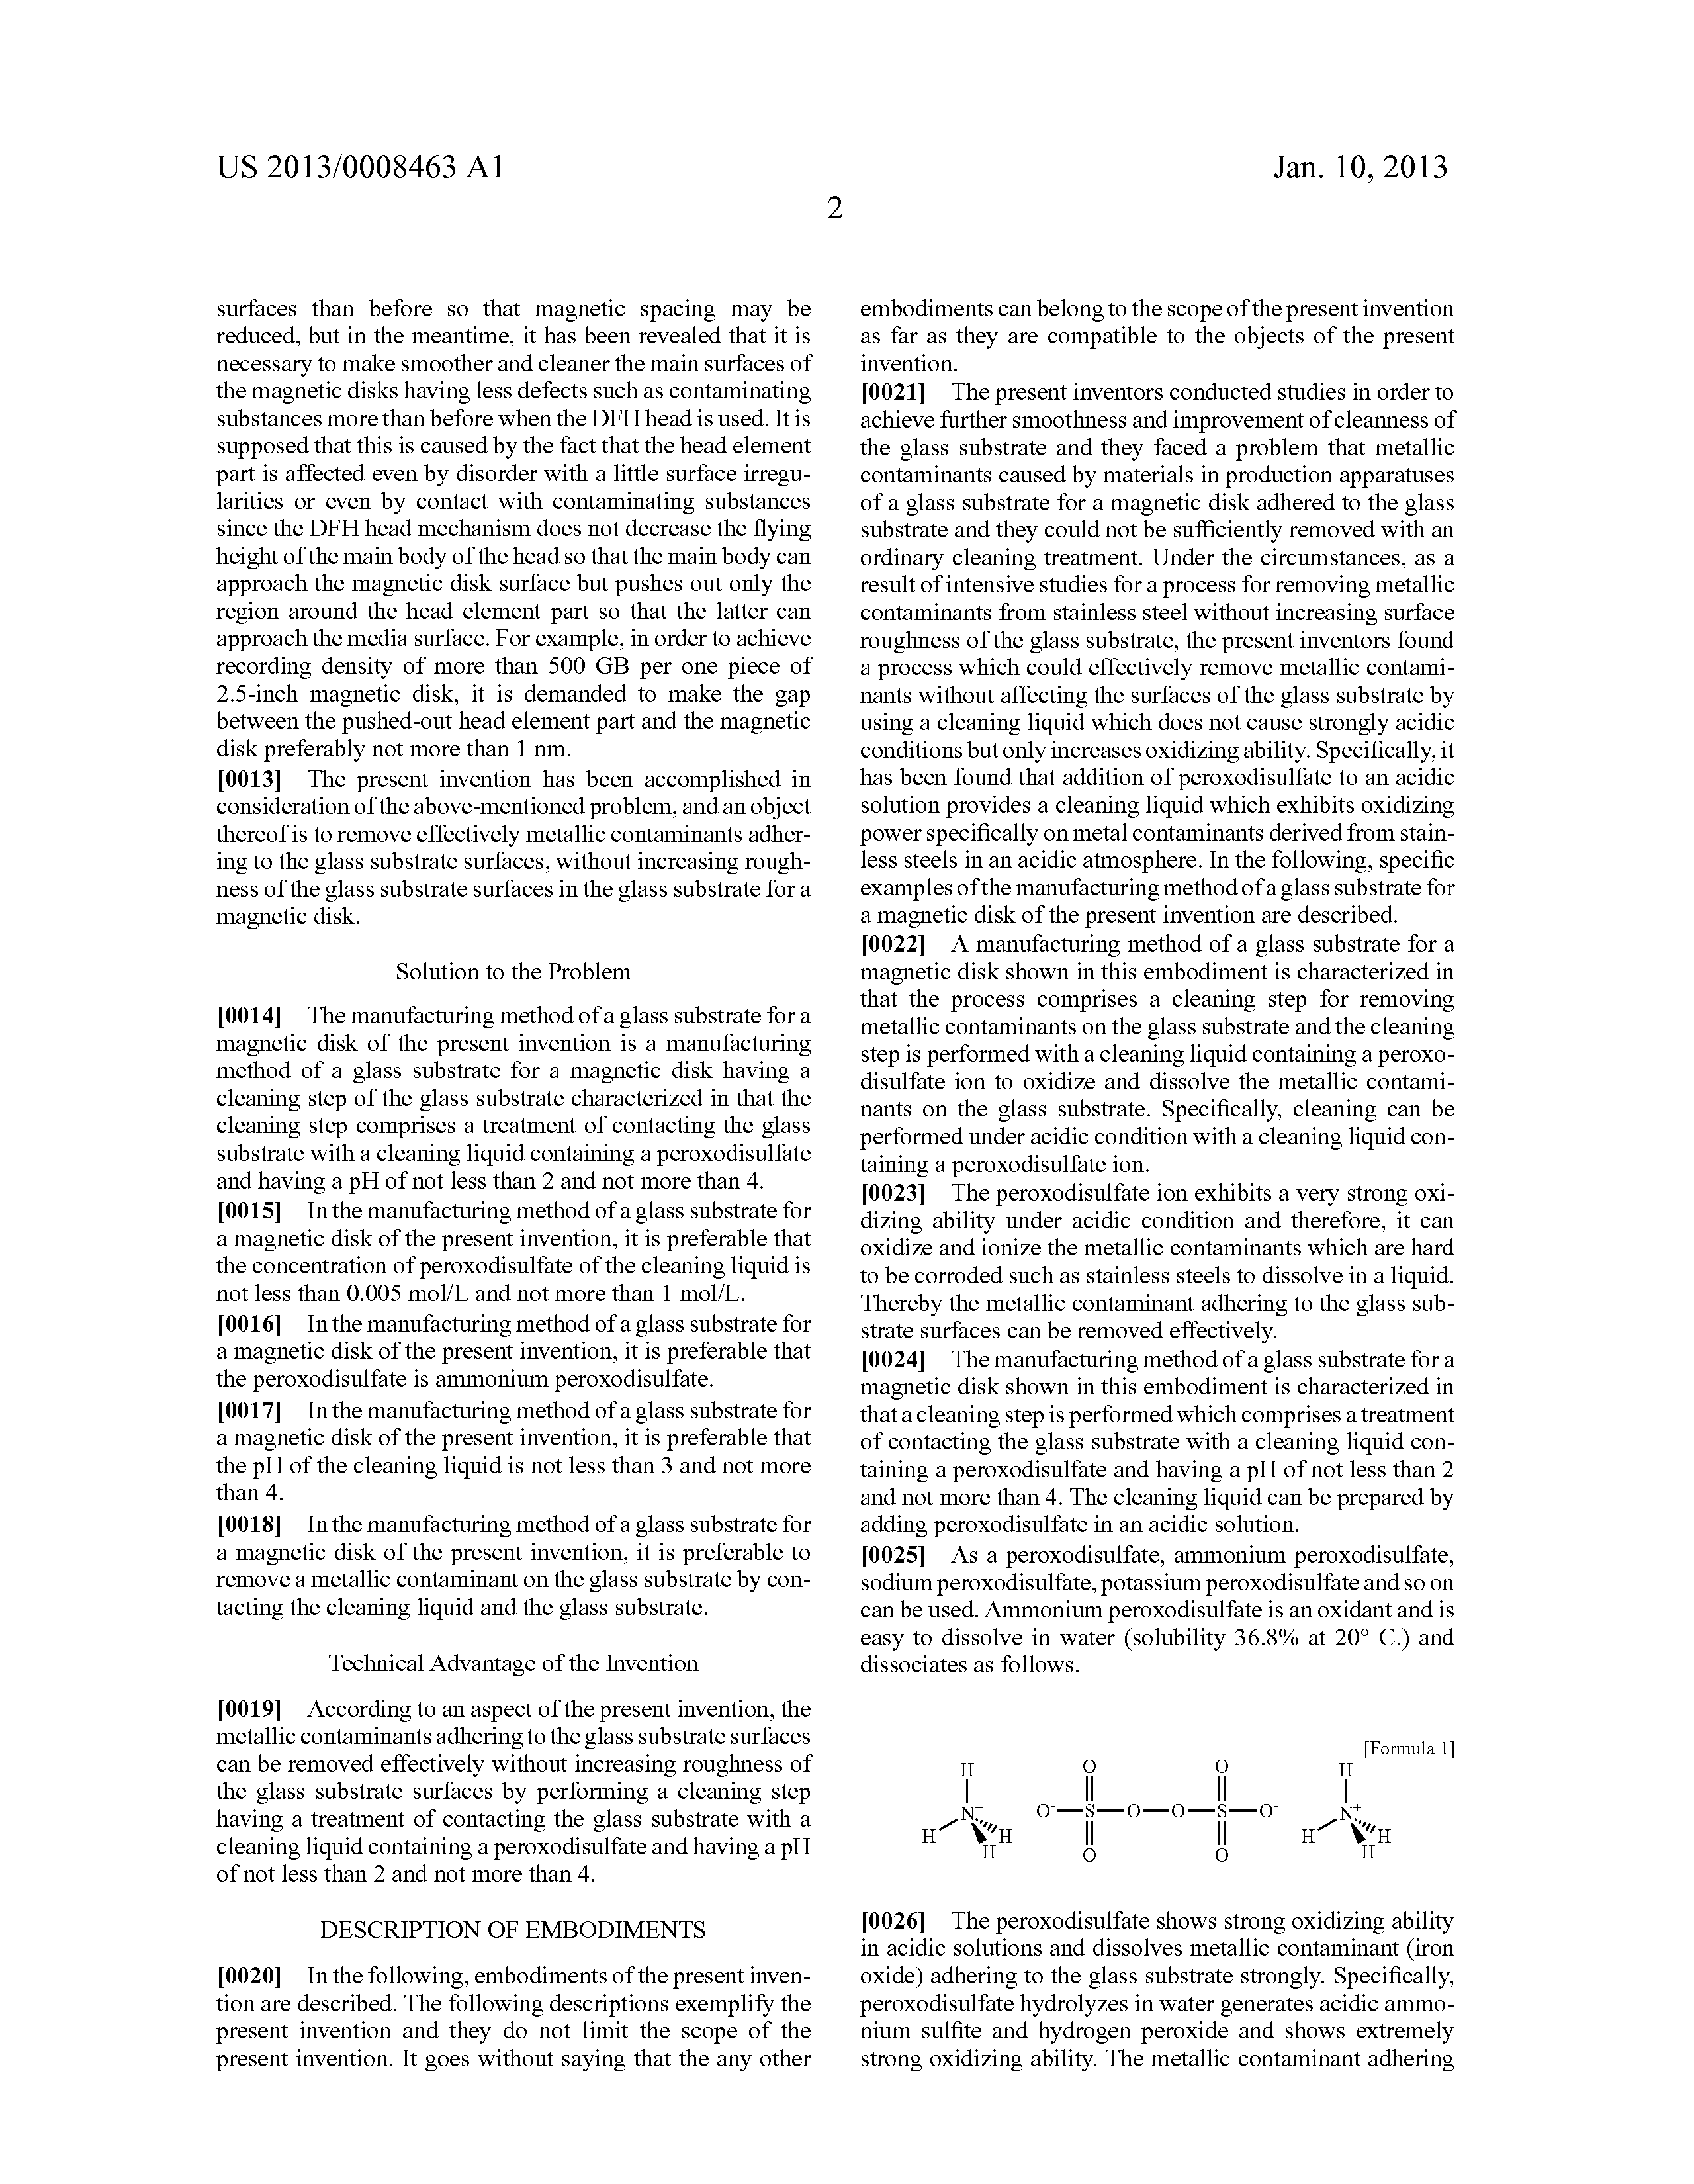 Brevet US20130008463 - Manufacturing method of a glass